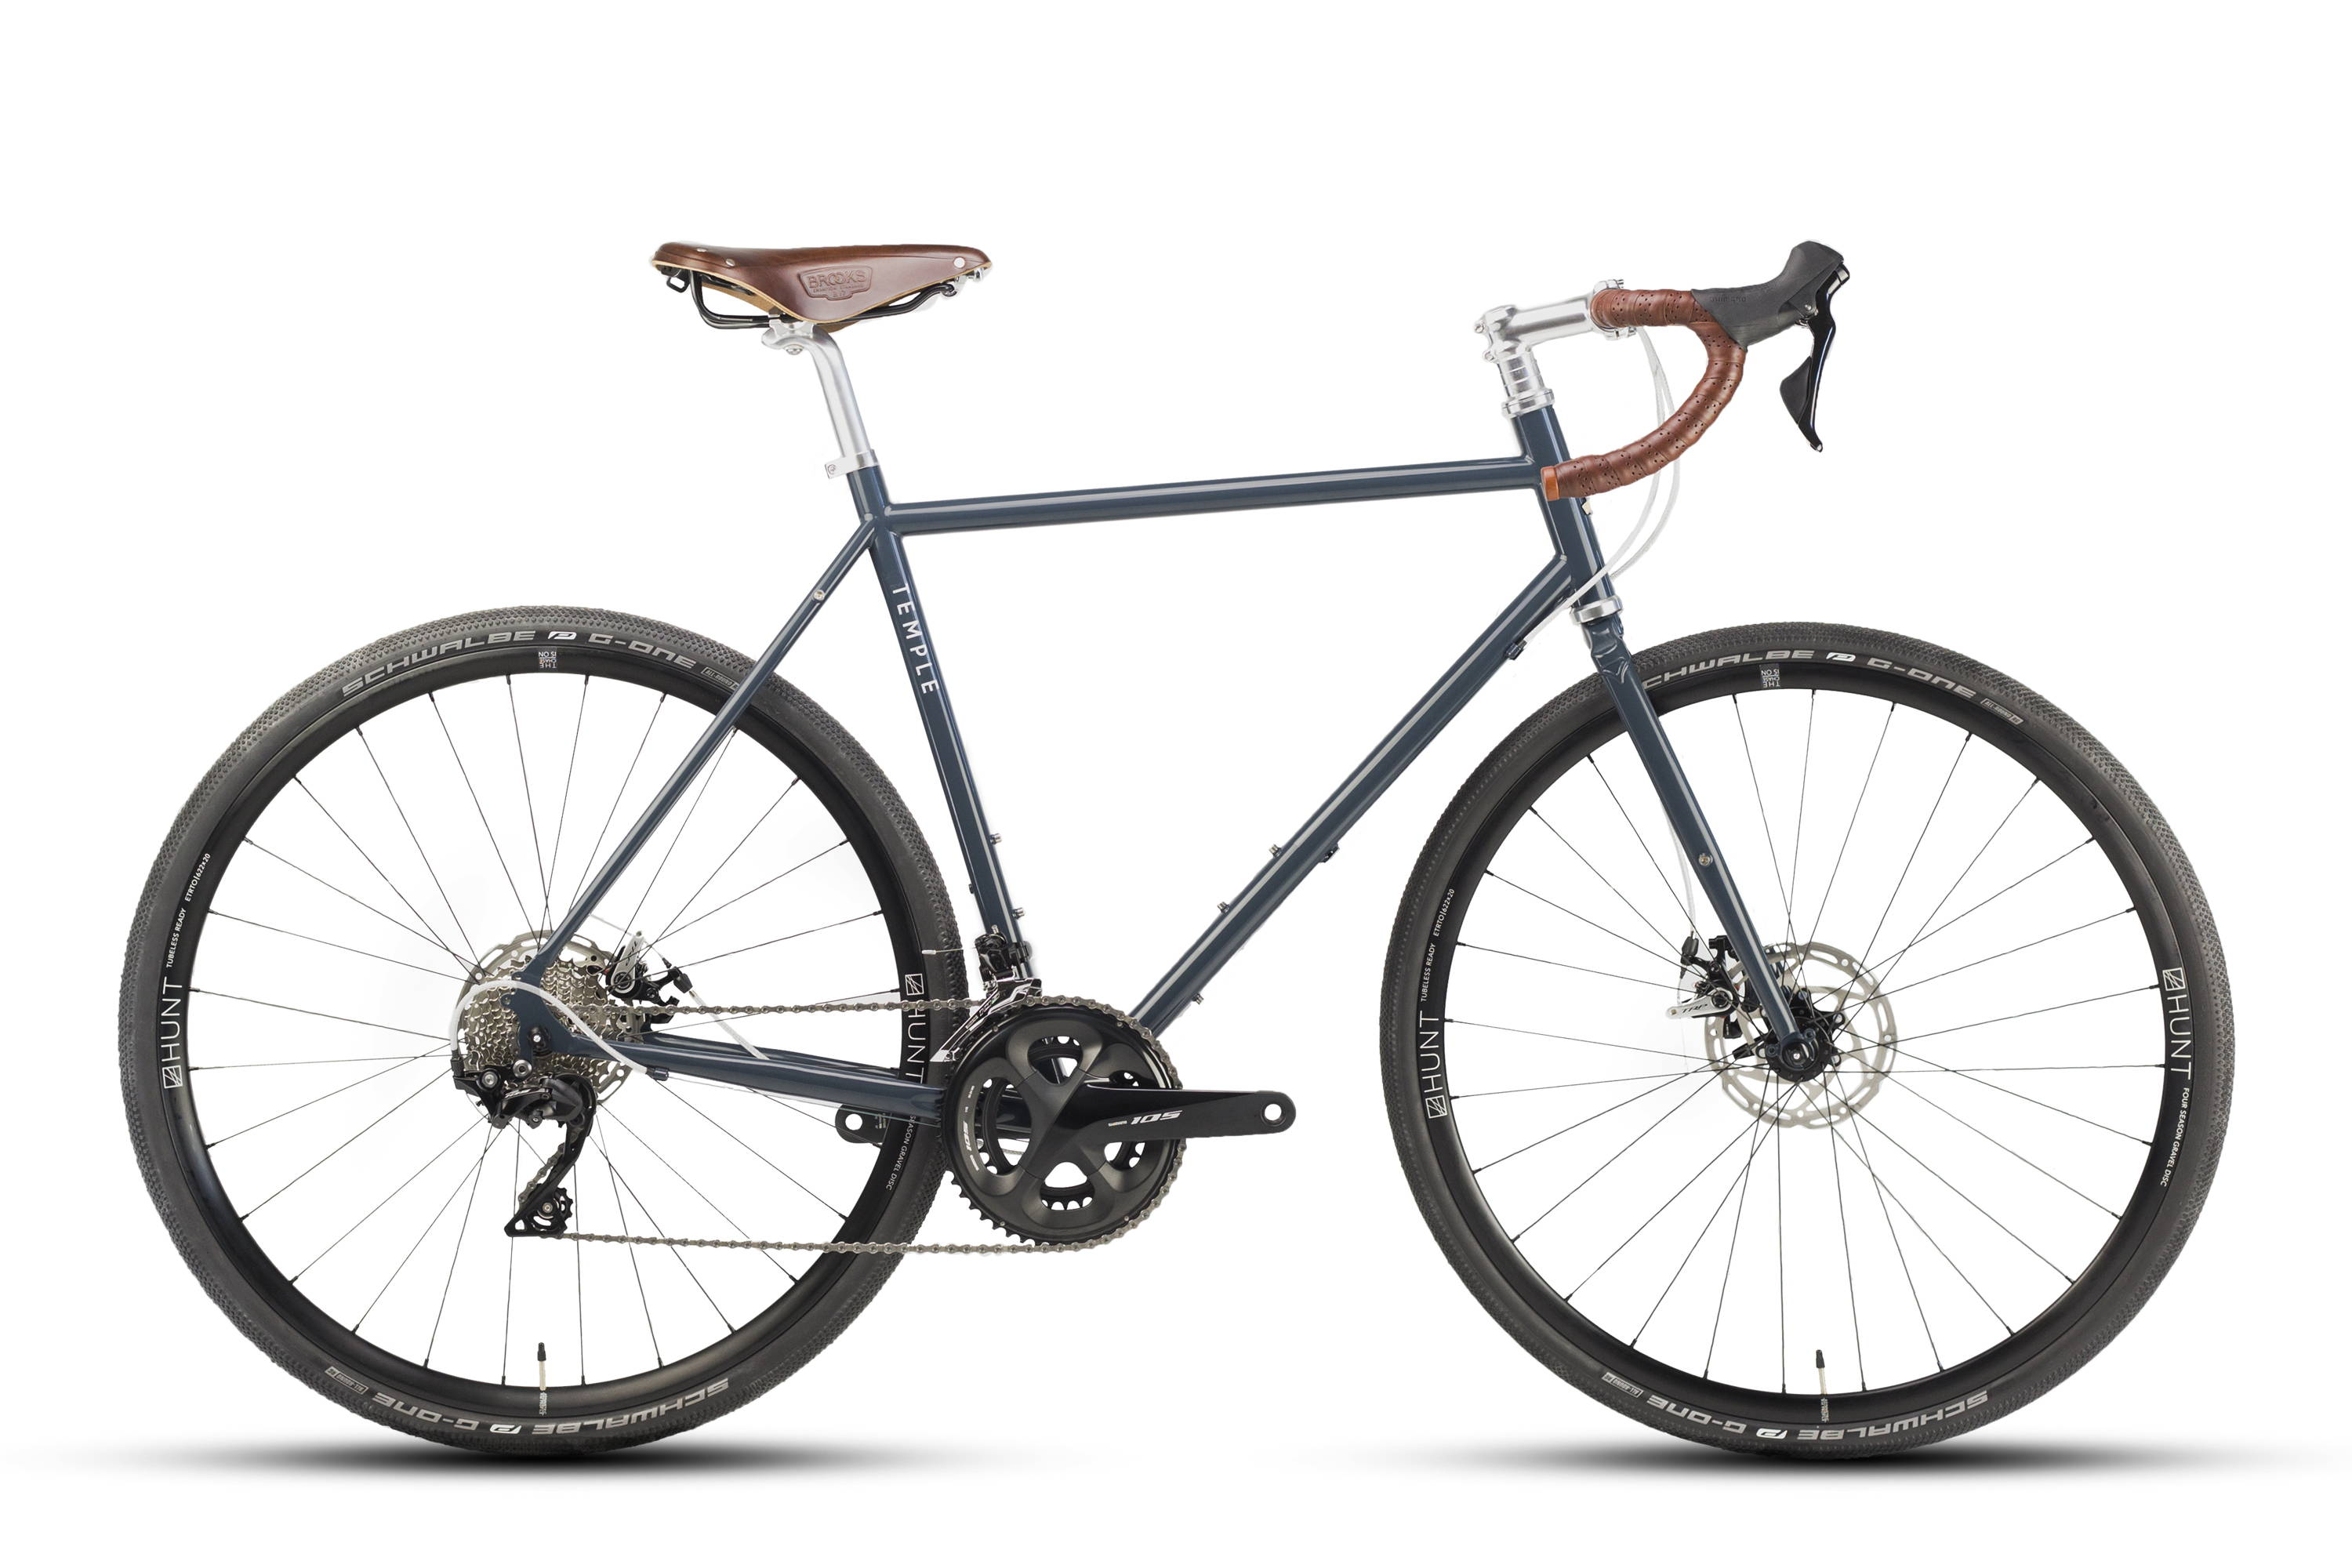 Temple Cycles - Lightweight bicycles 480358c27